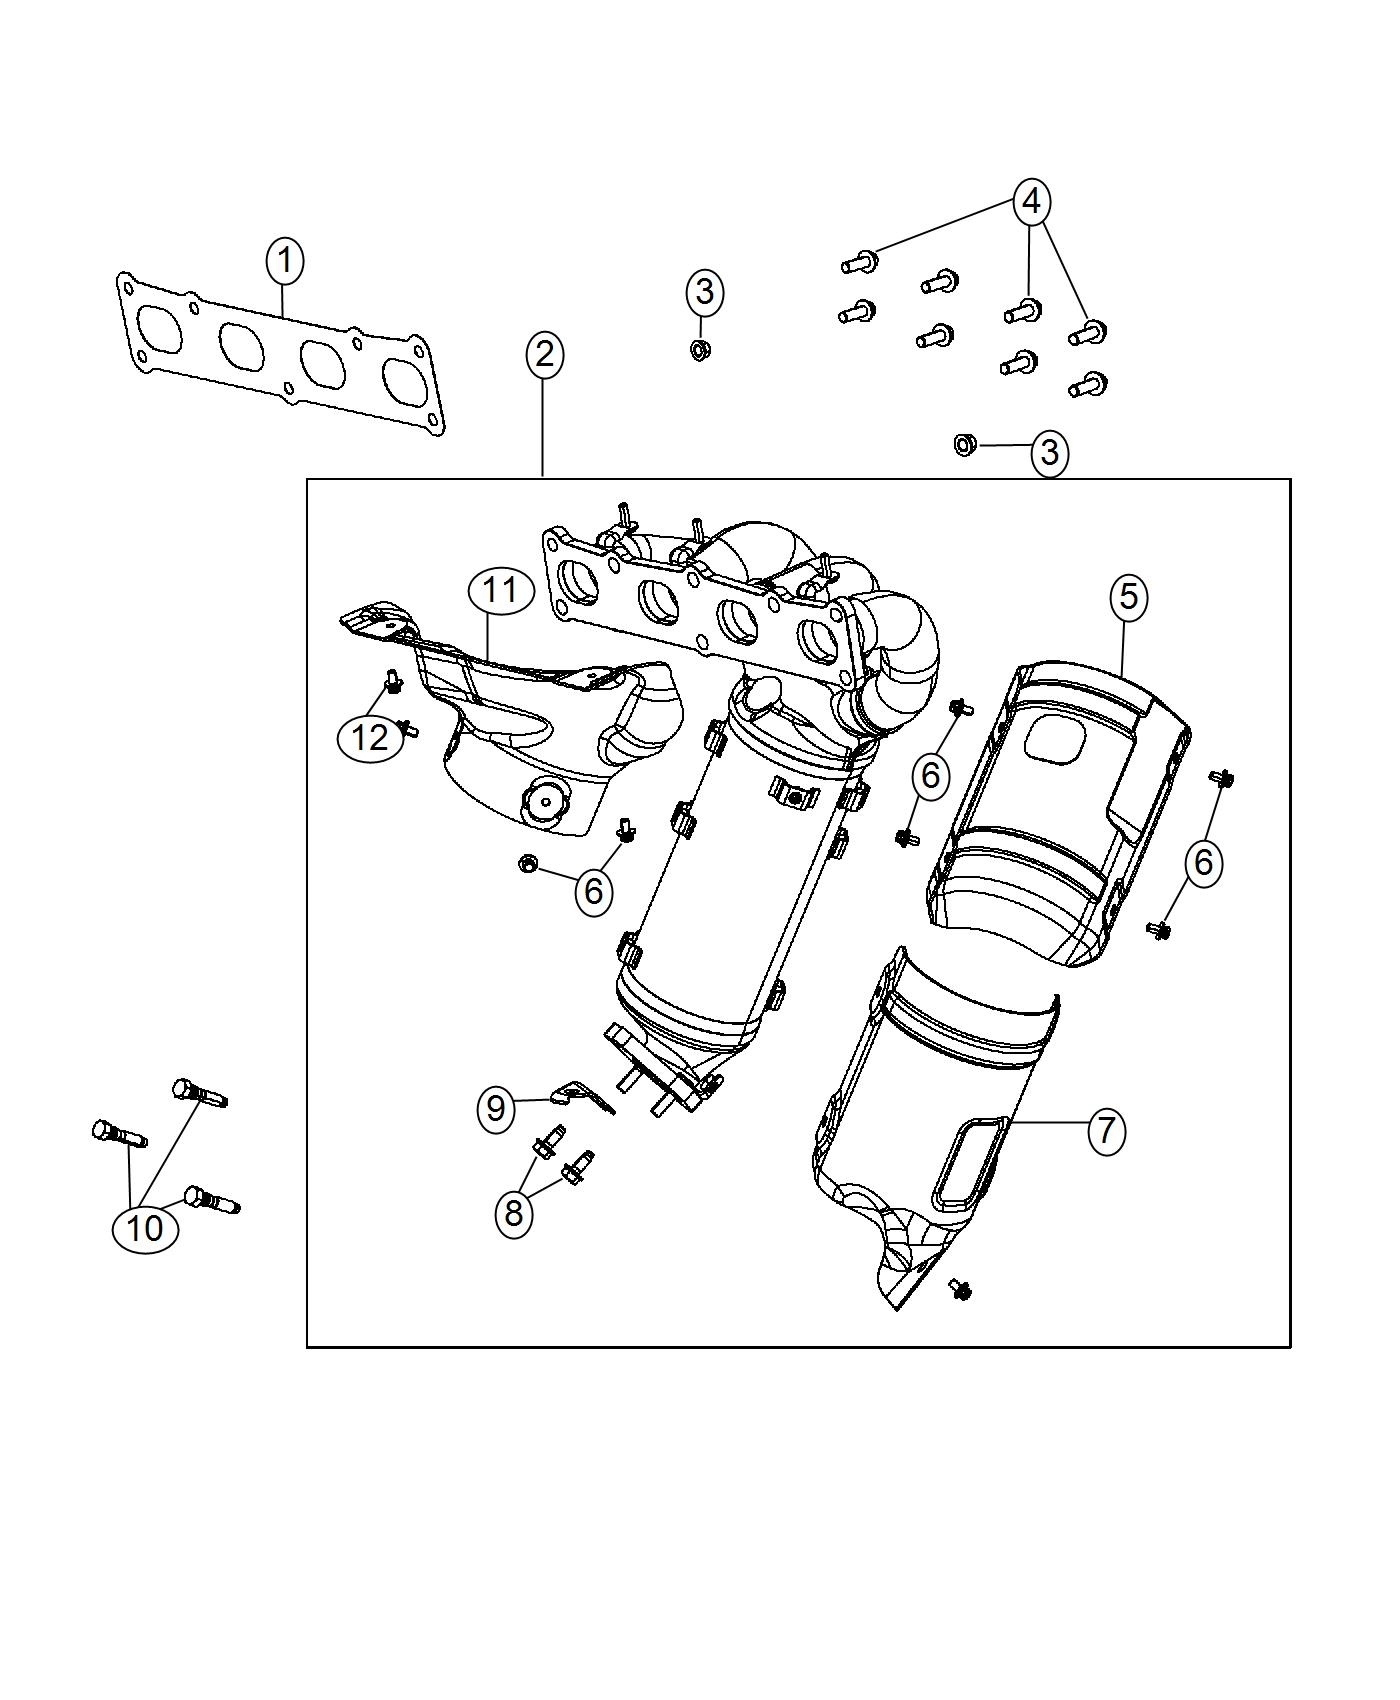 Jeep Compass Manifold. Exhaust, used for: exhaust and